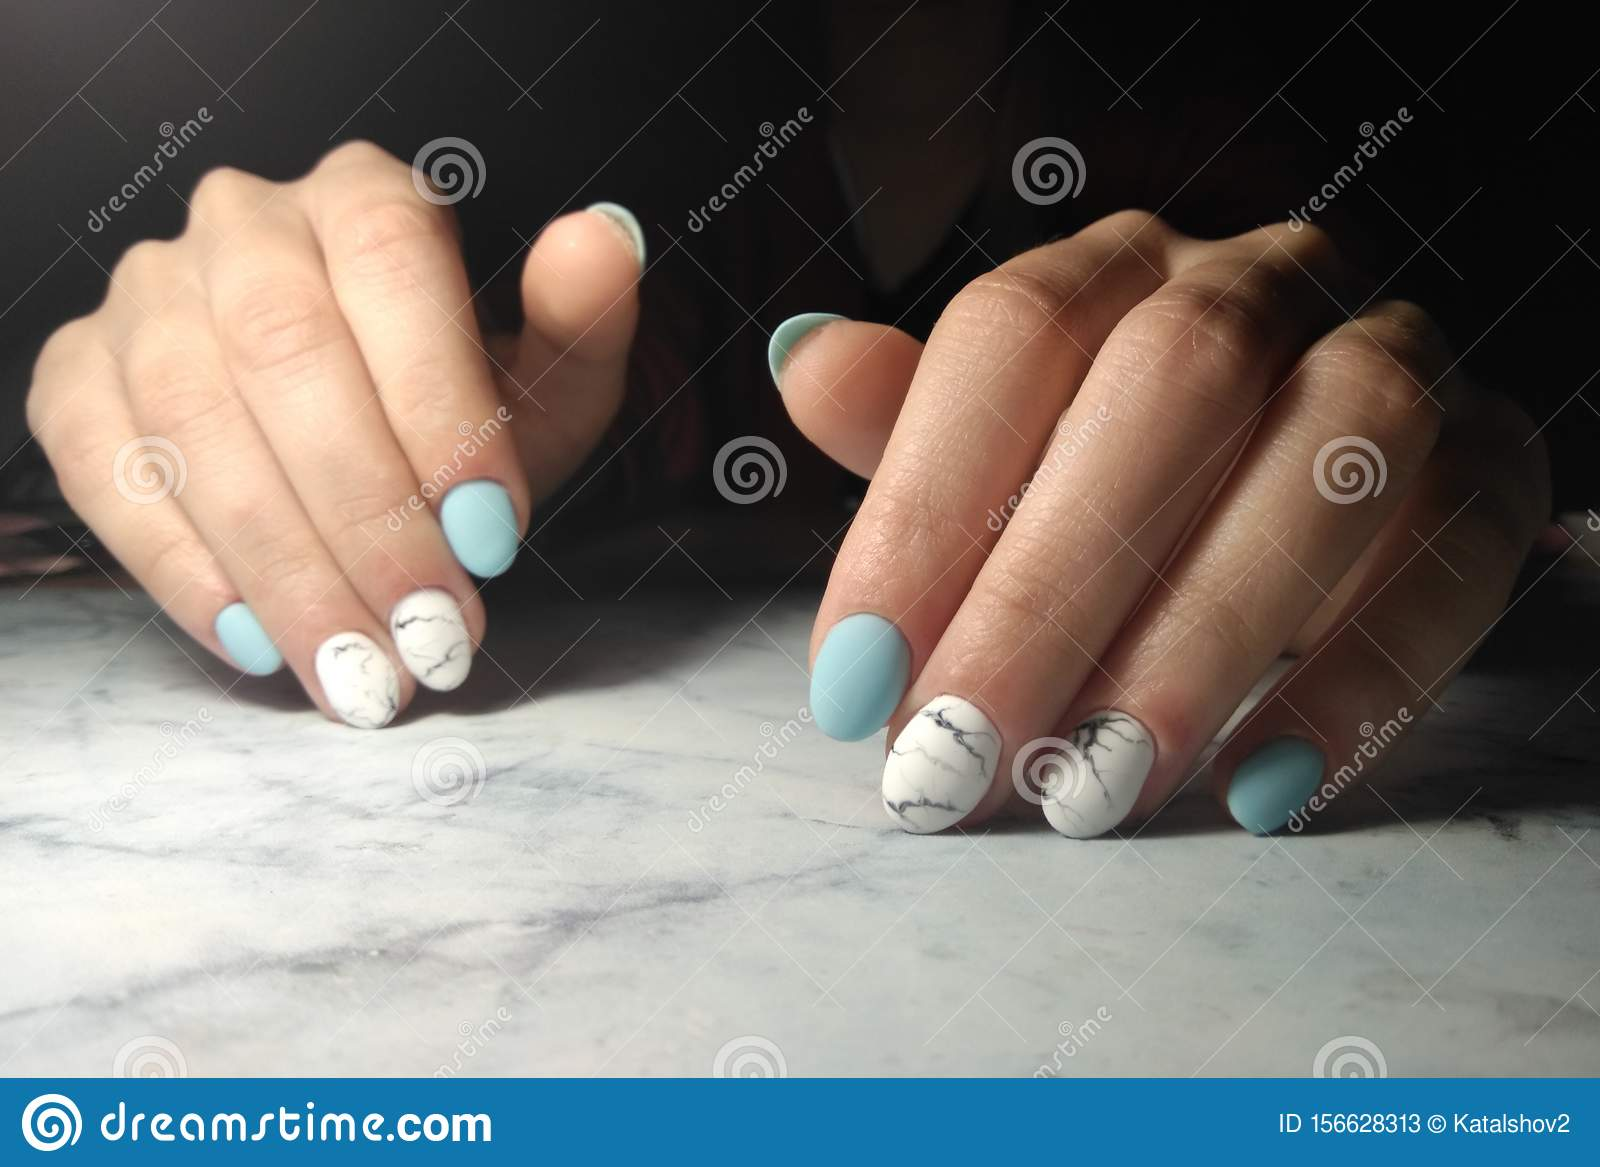 Manicure With Glossy Blue Solid Coating And Marble Design Stock Image Image Of Brown Businesswoman 156628313